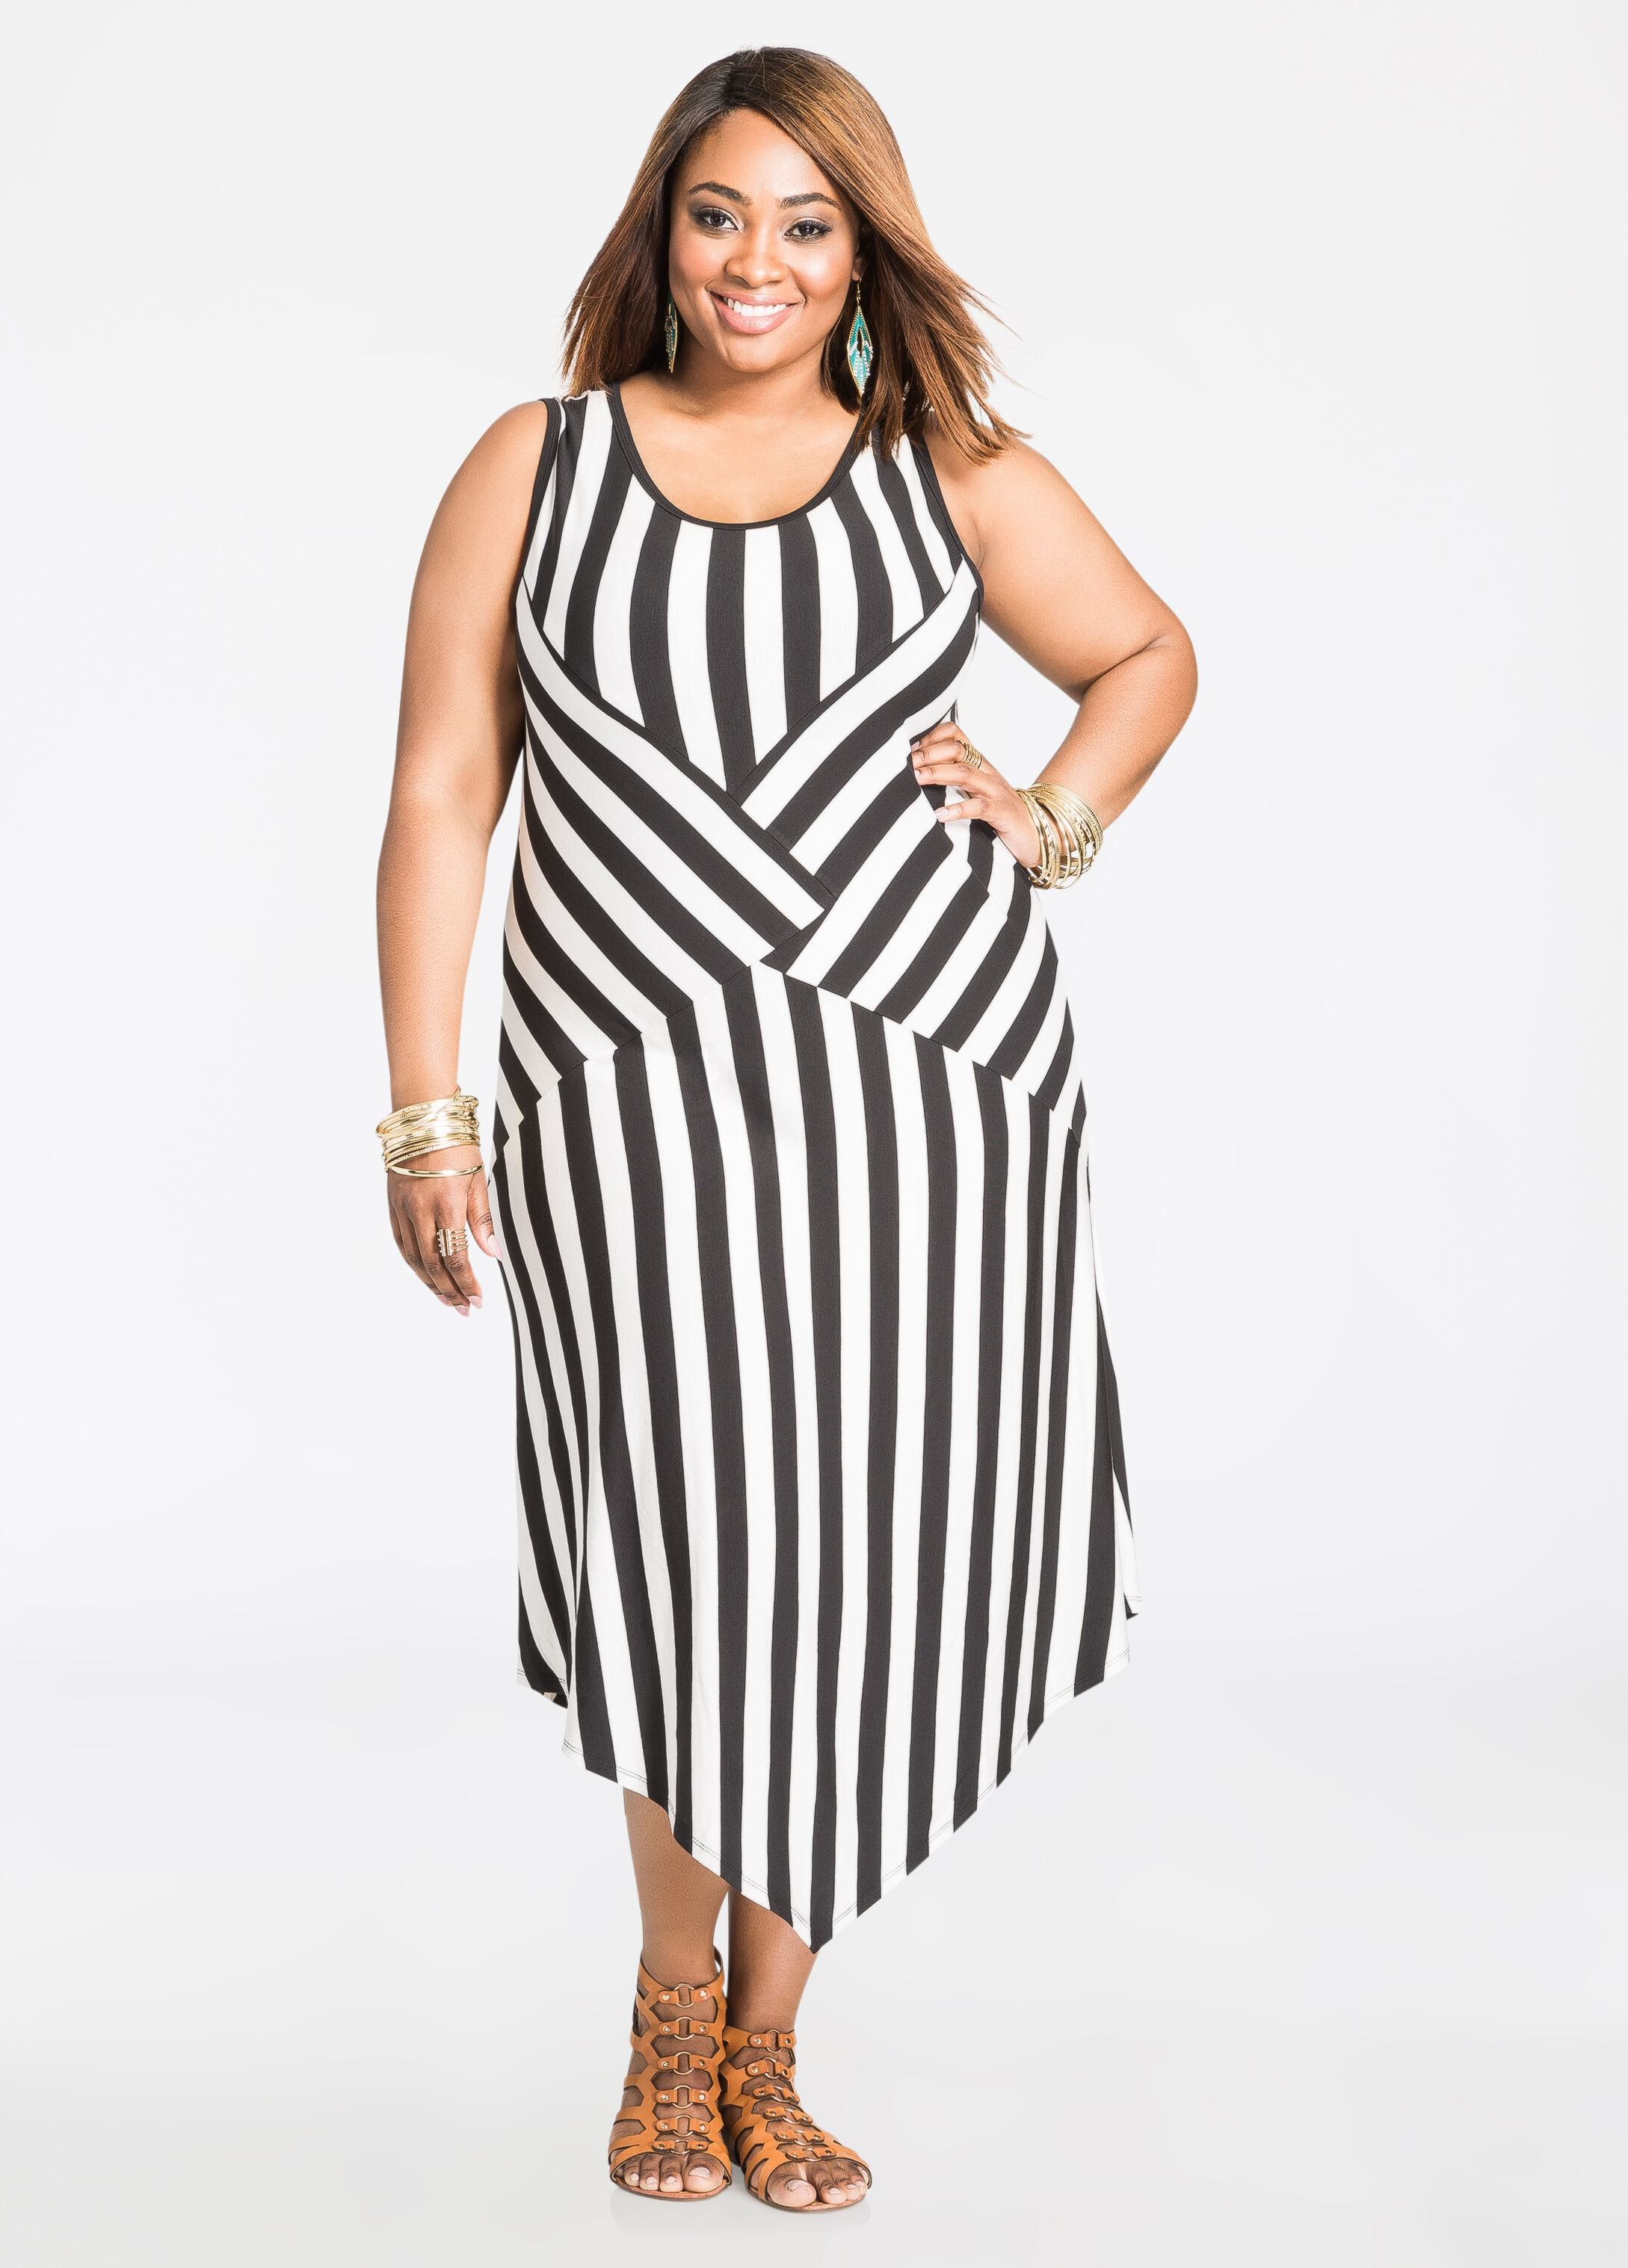 Striped Pointed Hem Dress Black White - Clearance